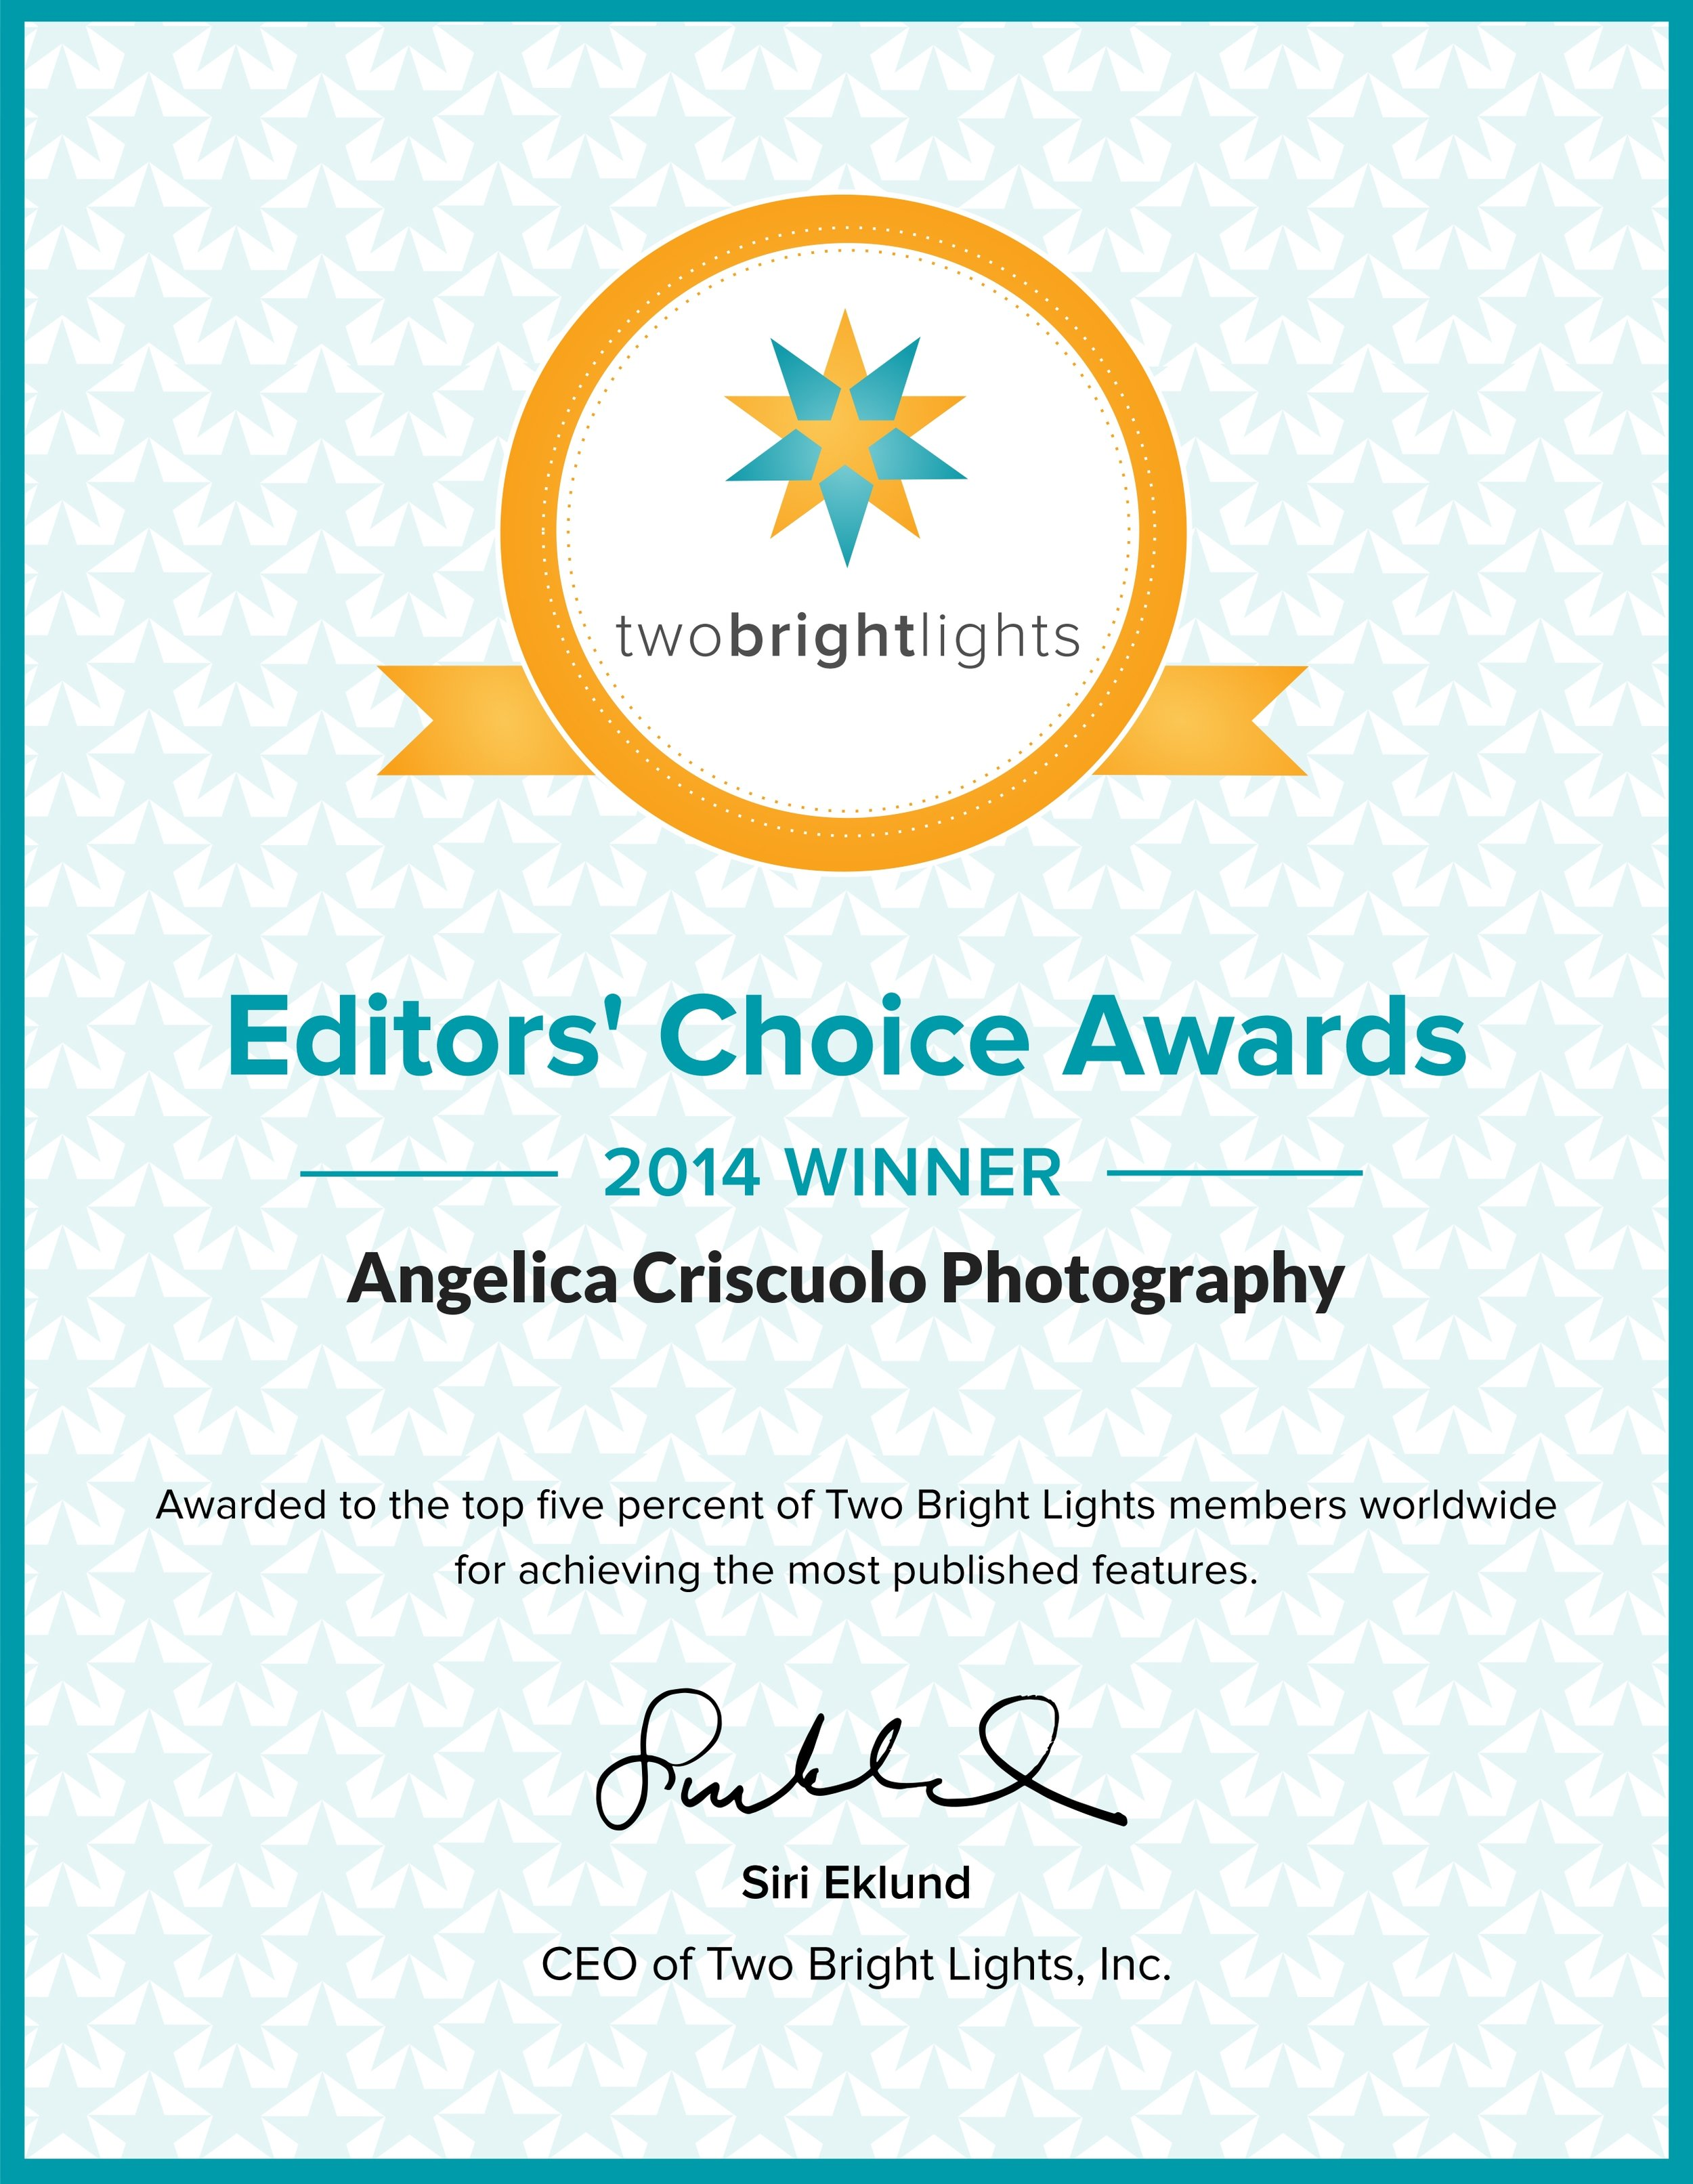 New York Wedding Photographer Award winning Photography Two Bright Lights Editor's Choice Awards